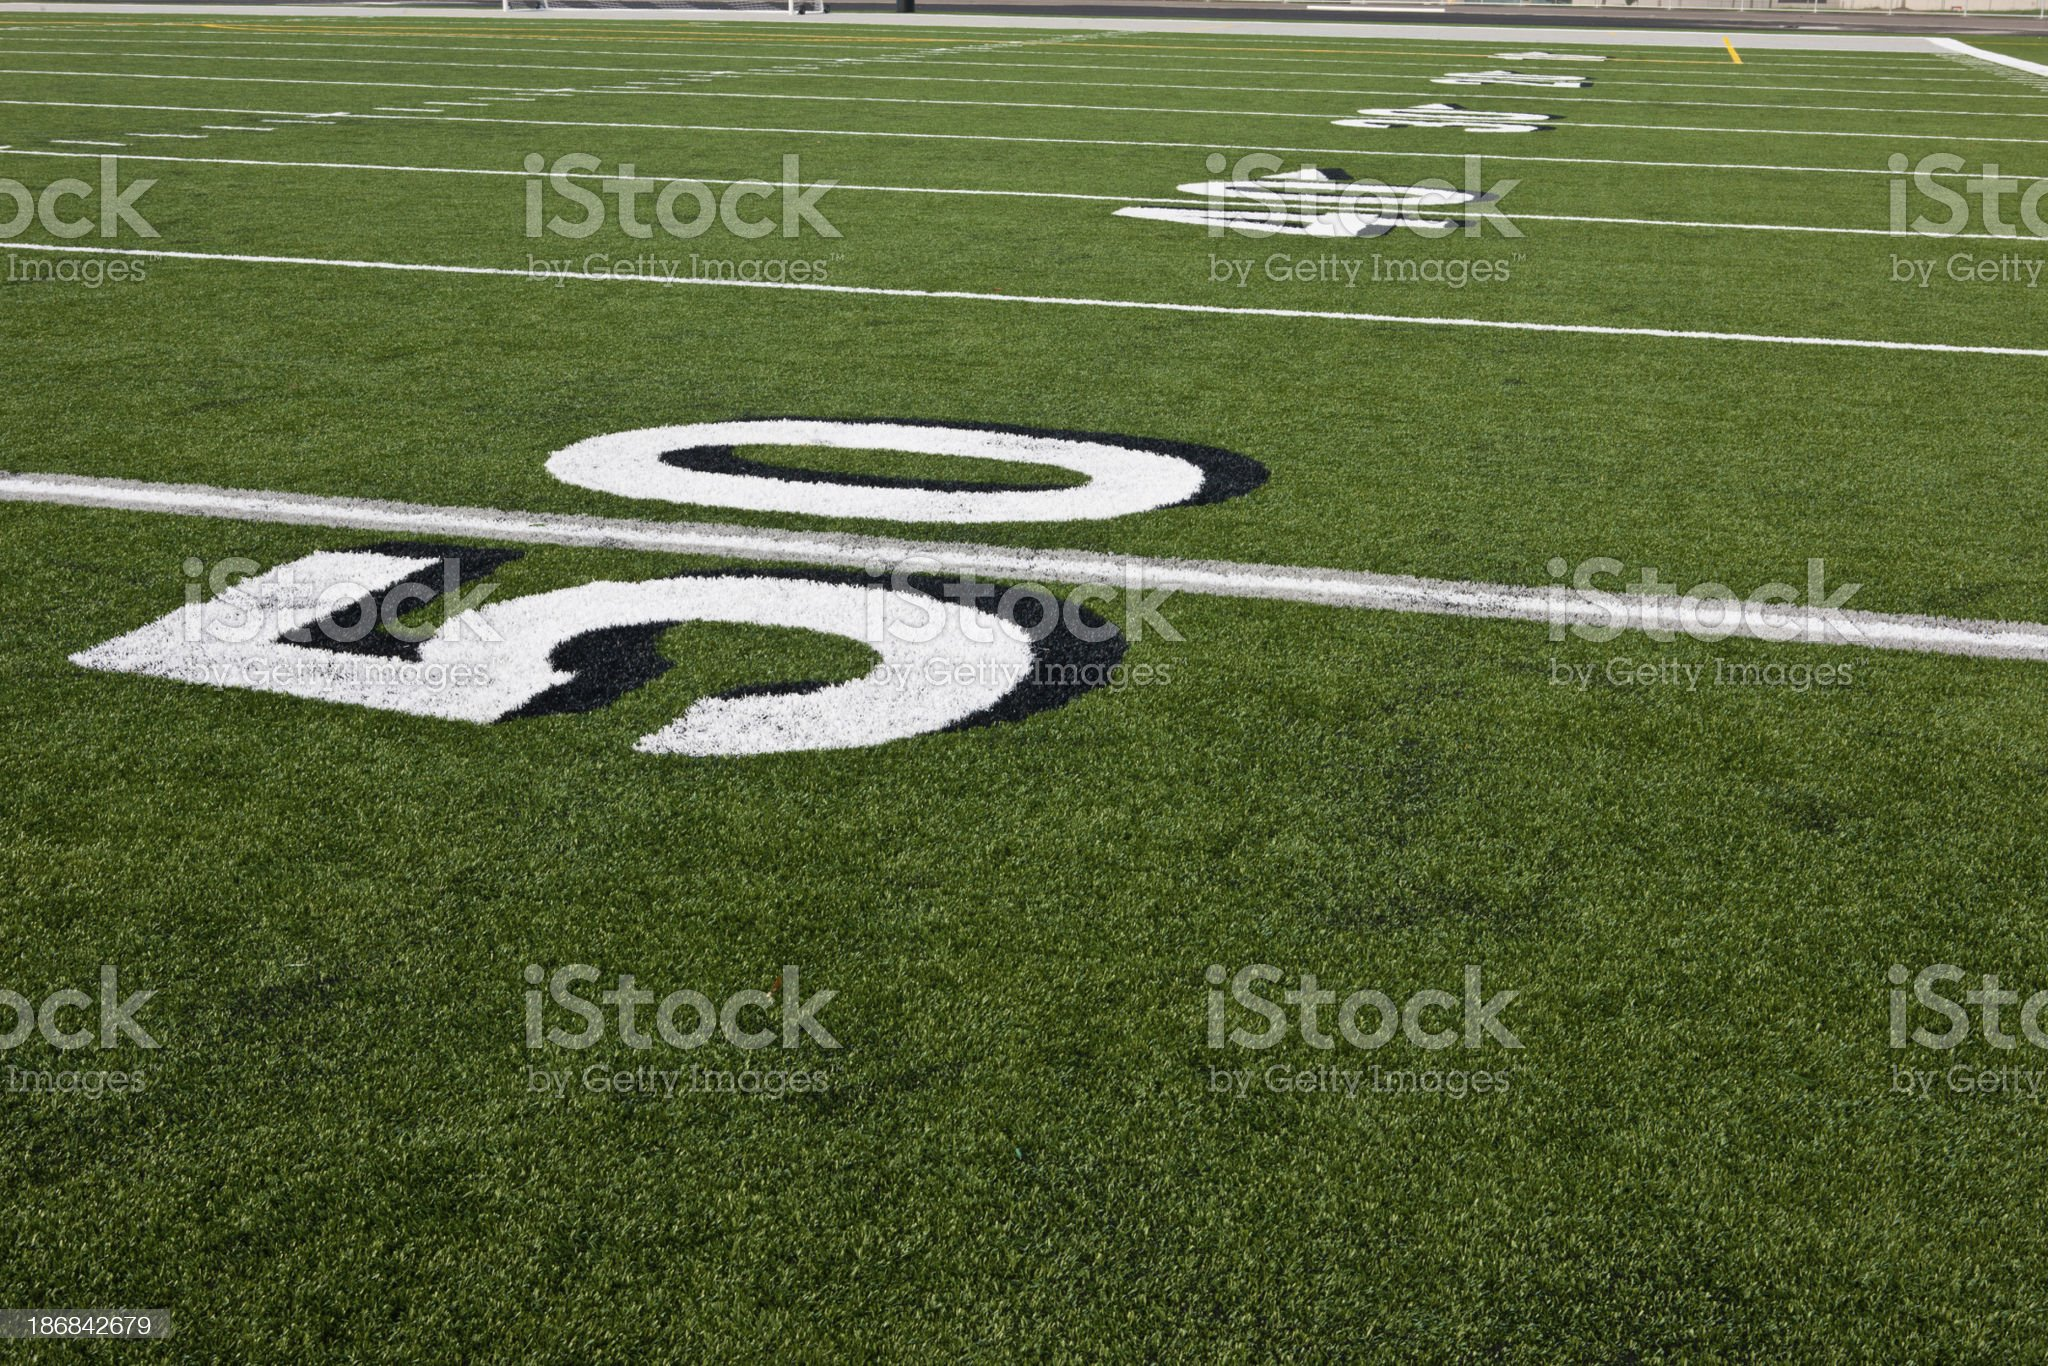 Fifty Yard Line on Football Field royalty-free stock photo